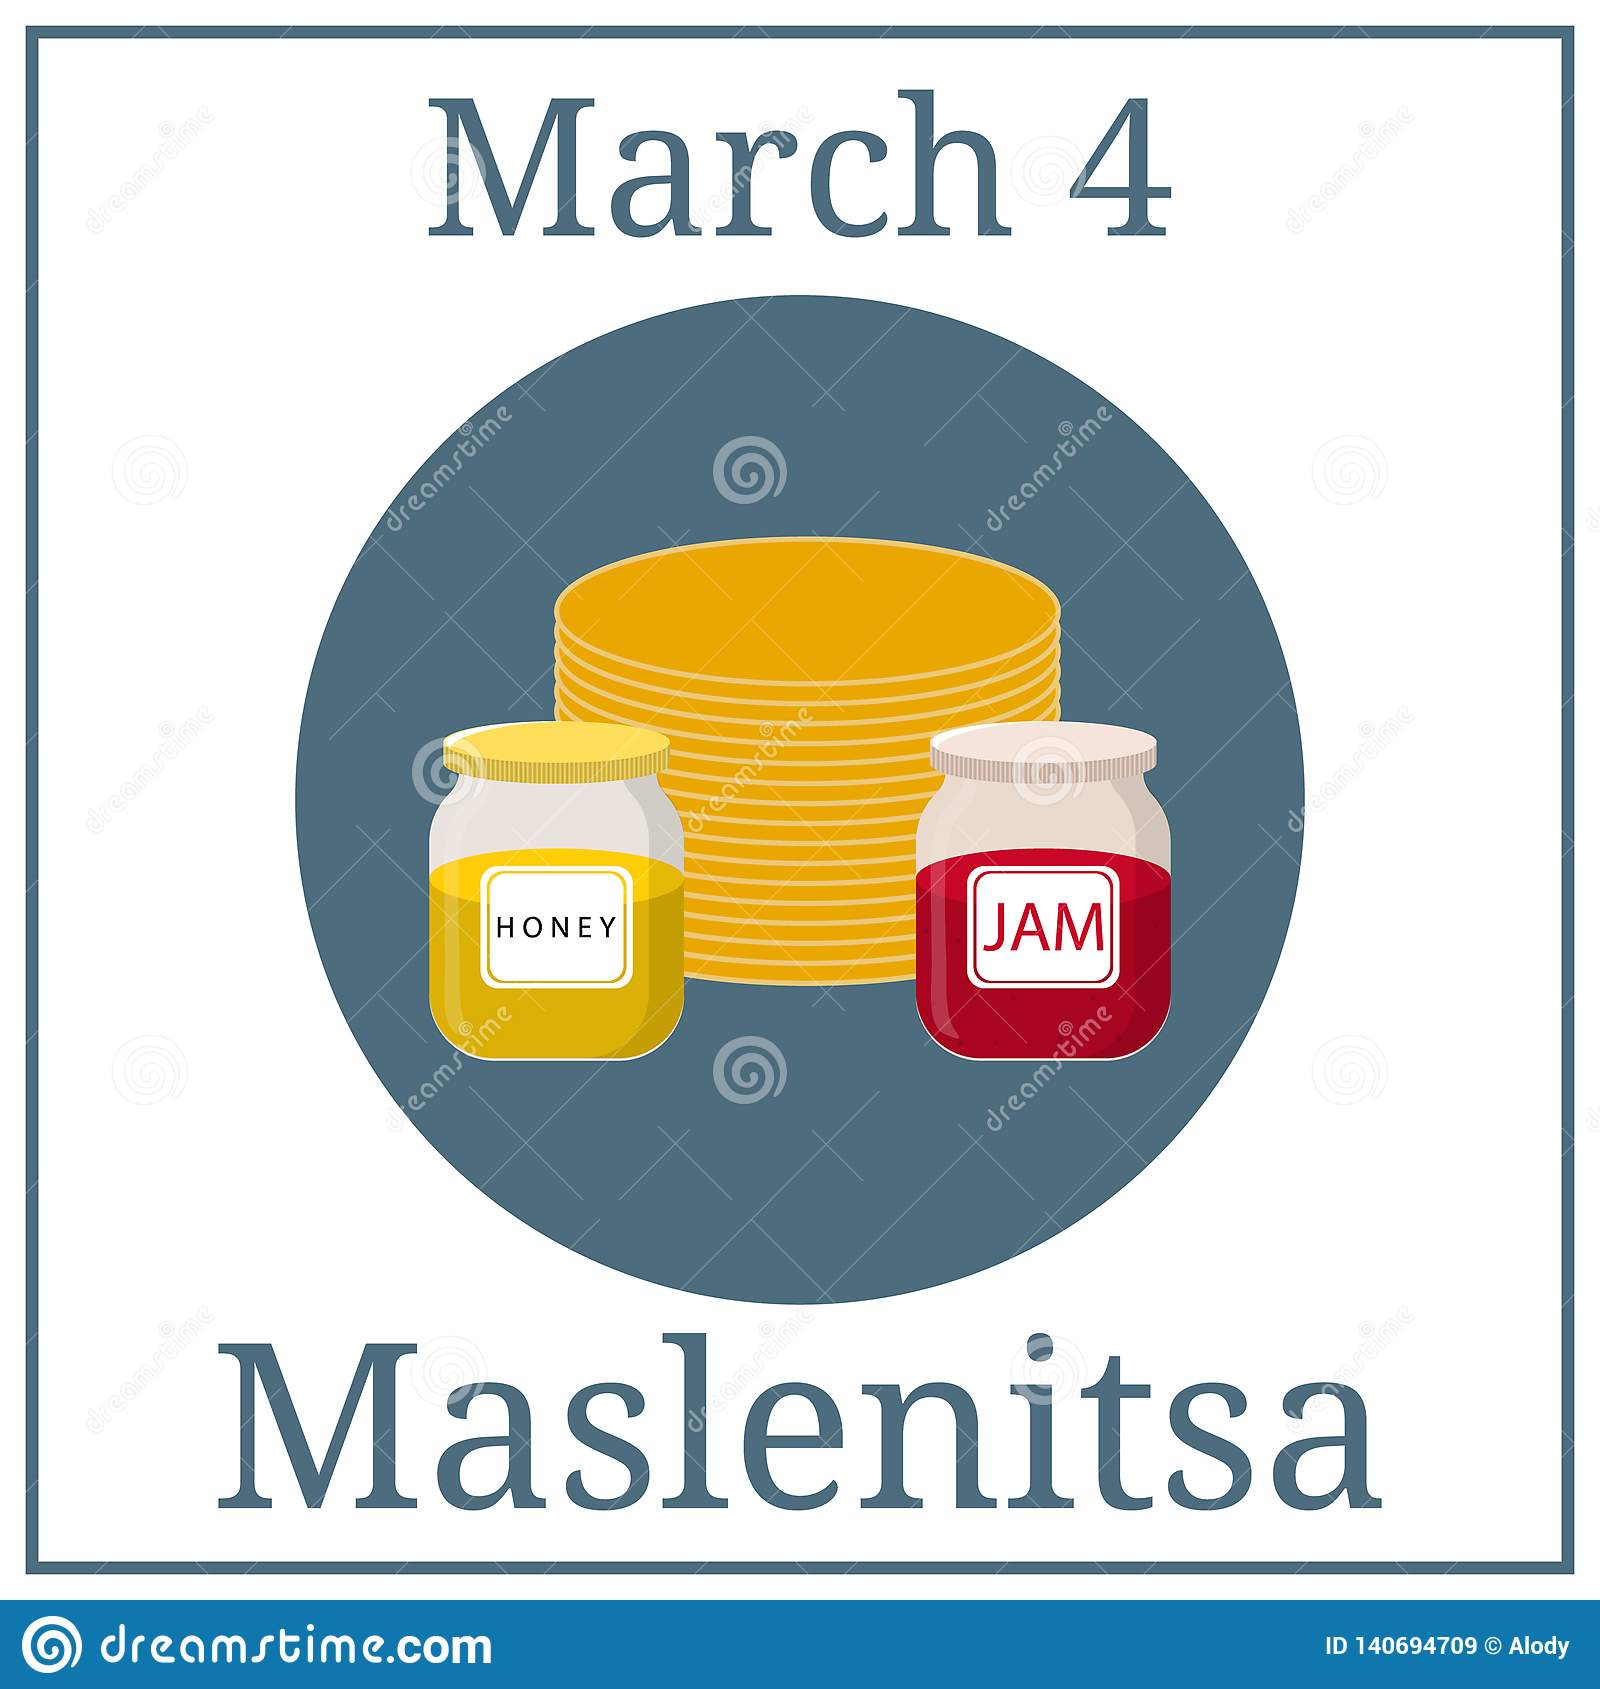 Maslenitsa Poster. March holiday calendar. March 4. Great Ukrainian and Russian Holiday. Pancakes, honey and jam. Vector.